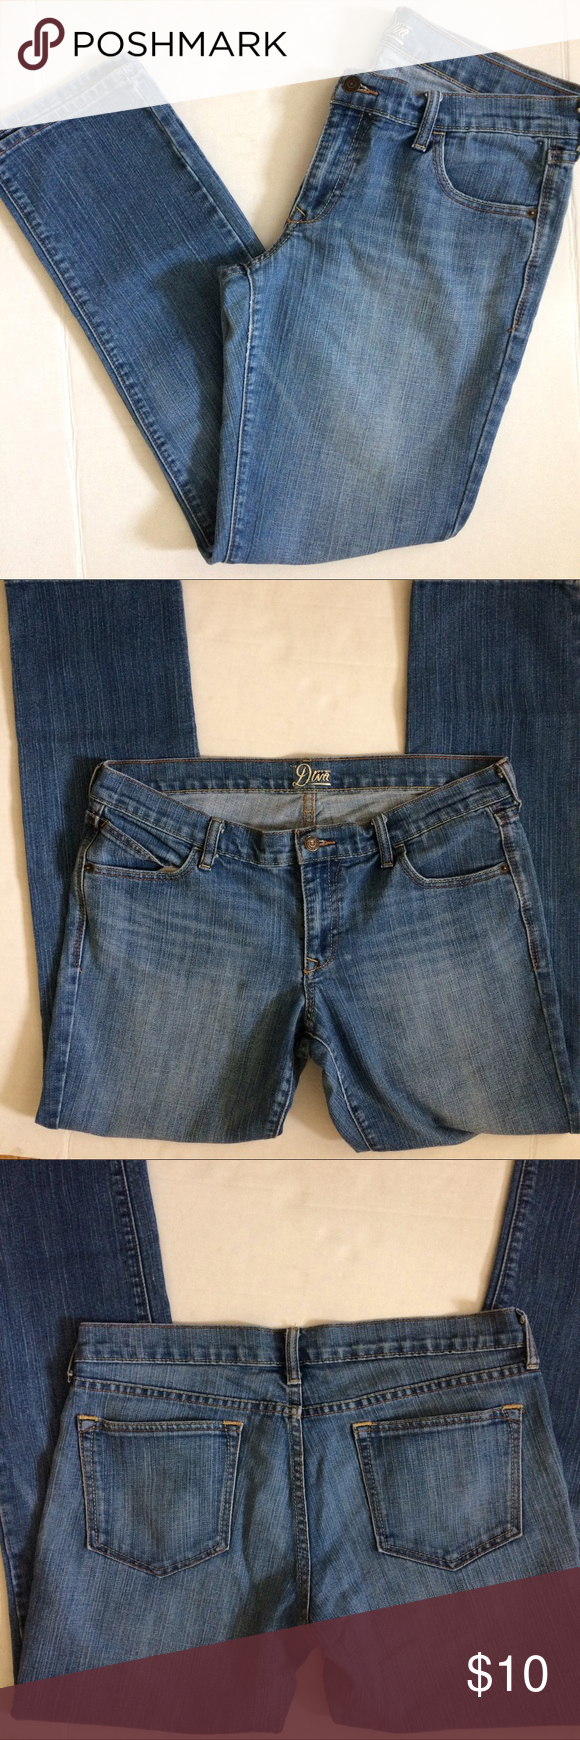 """Old Navy Diva jeans Old Navy diva jeans. Straight leg, medium wash. Size 12 Long. Inseam approx 31.5"""" waist approx 18"""" laying flat Old Navy Jeans Straight Leg"""